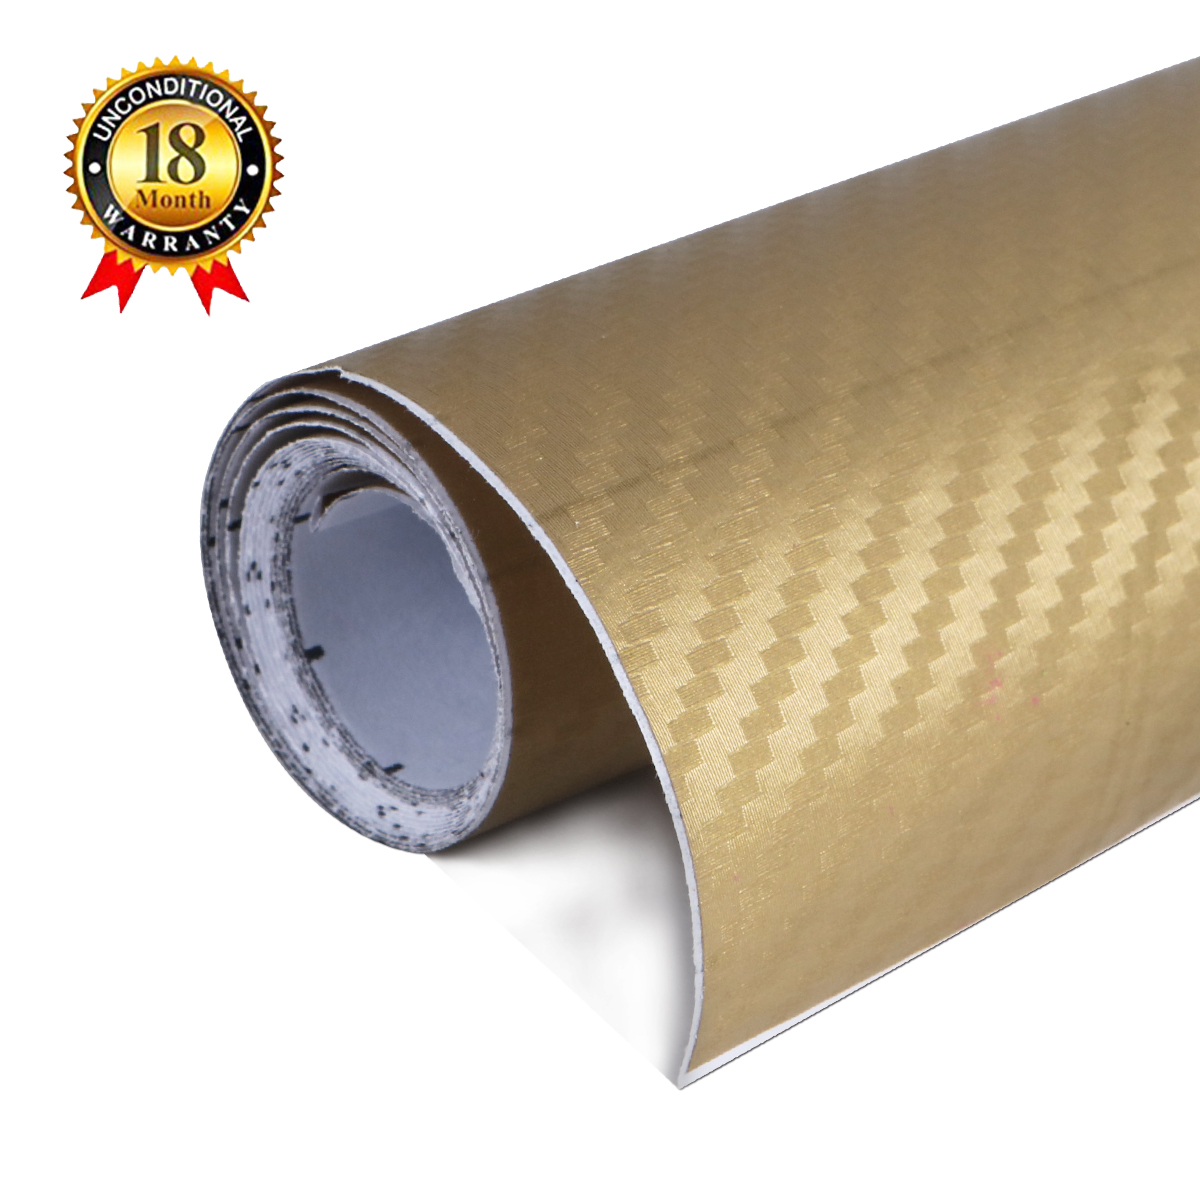 1PC 10 127cm 3D Carbon Fiber PVC Sticker Car Wrap Sheet Roll Film Stickers Decals Motorcycle Car Styling Accessories Automobiles in Car Stickers from Automobiles Motorcycles